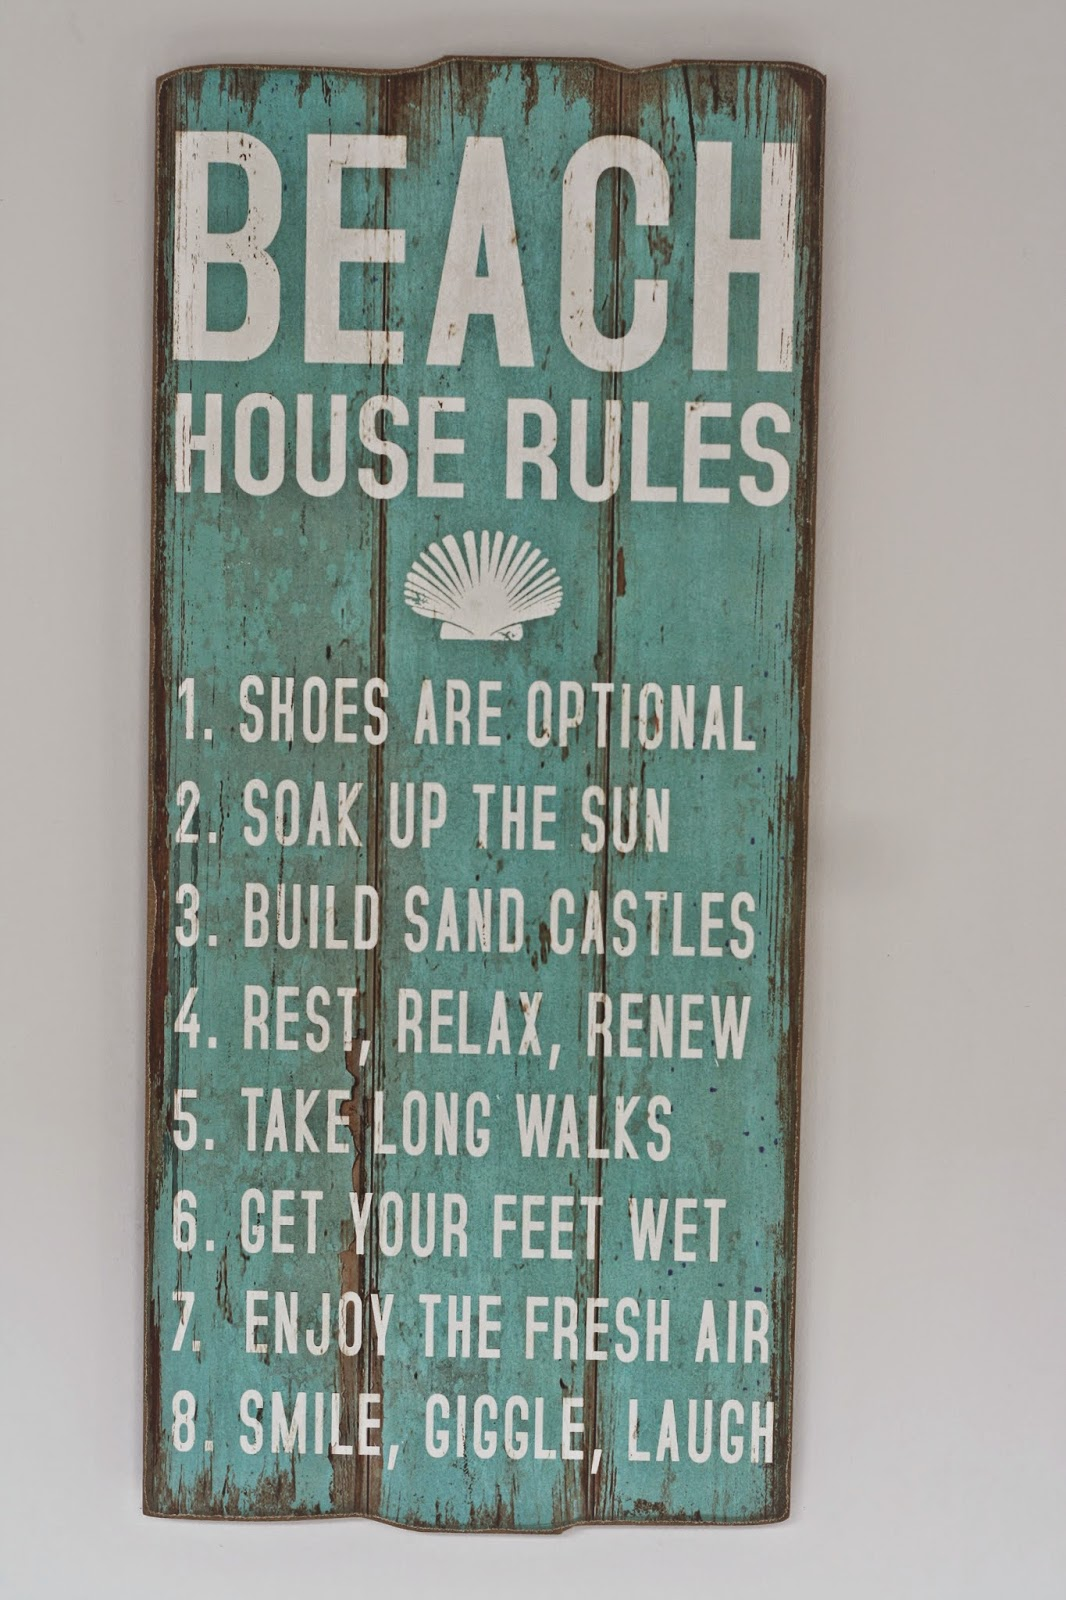 Interior Board Beach House Rules